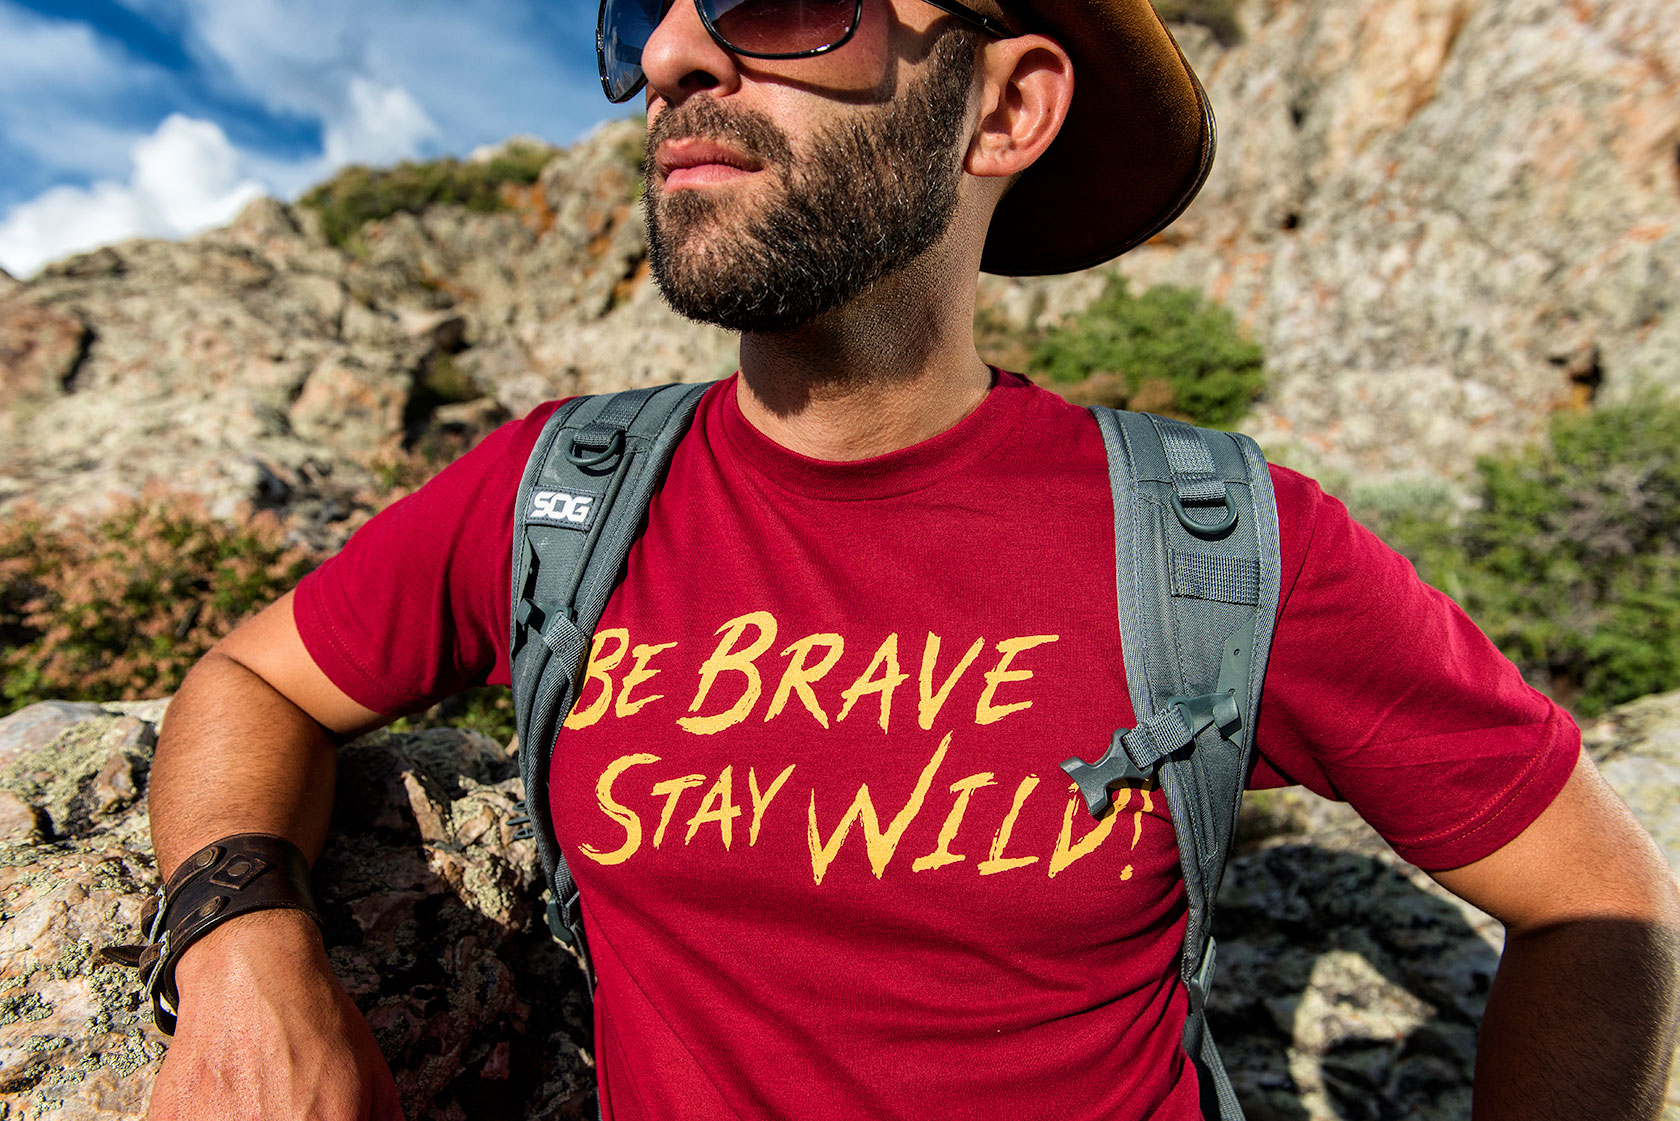 austin-trigg-brave-wilderness-utah-coyote-peterson-lifestyle-shirt.jpg